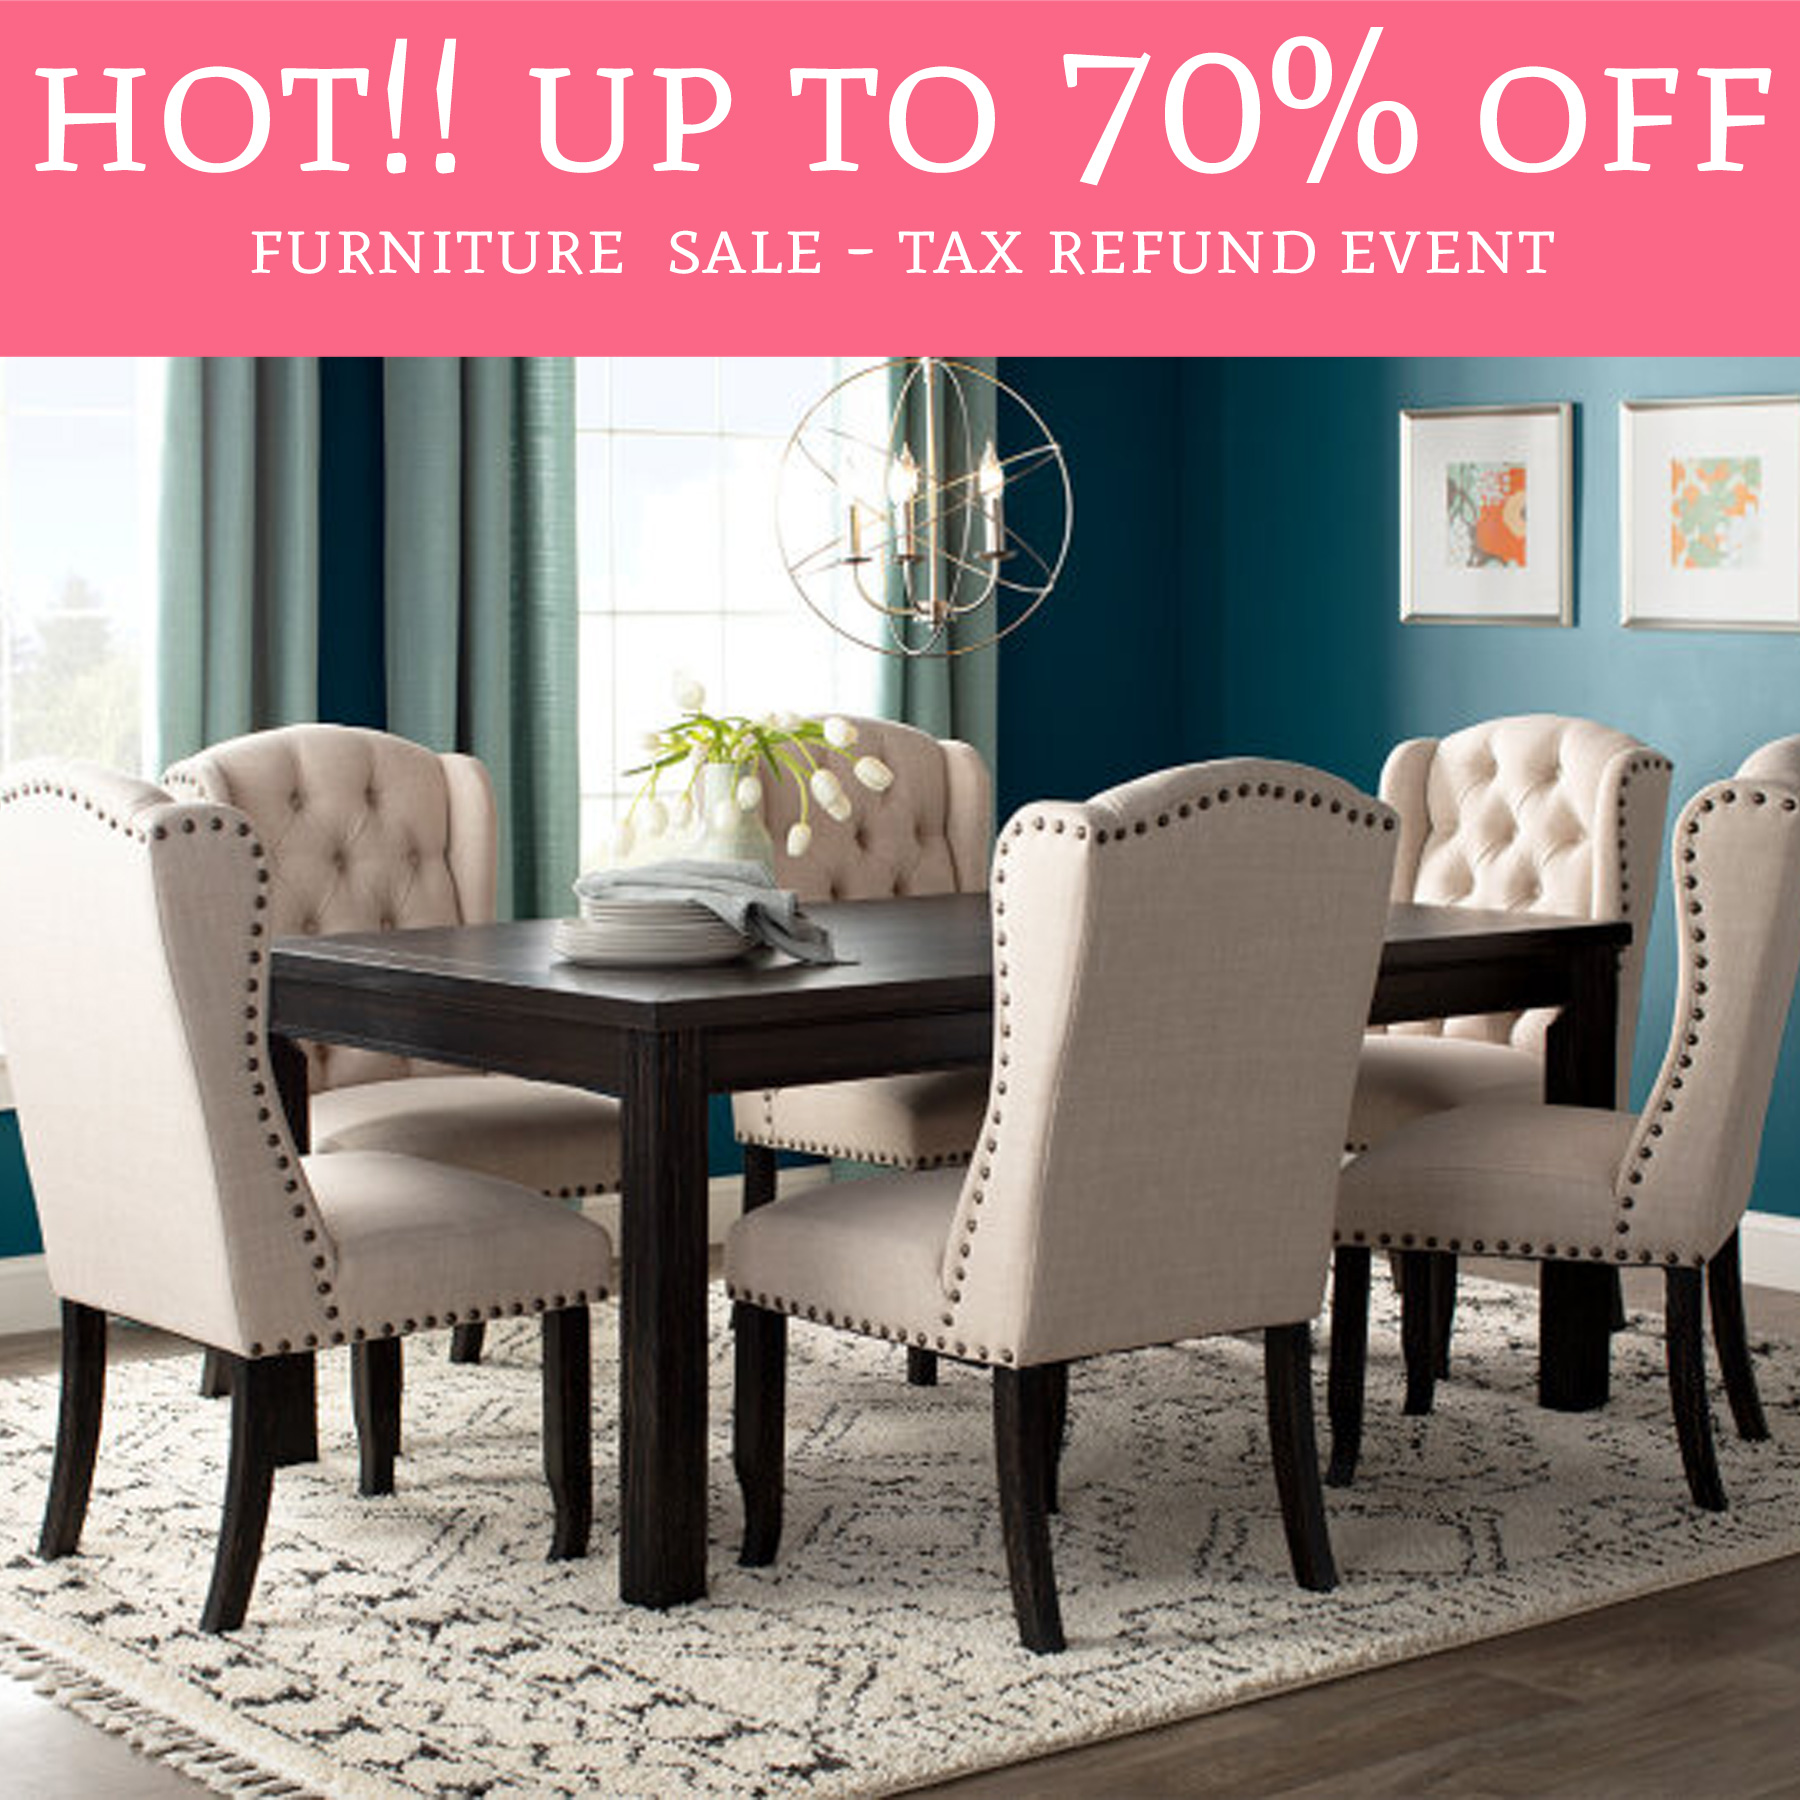 HOT! Up To 70% Off Furniture Sale